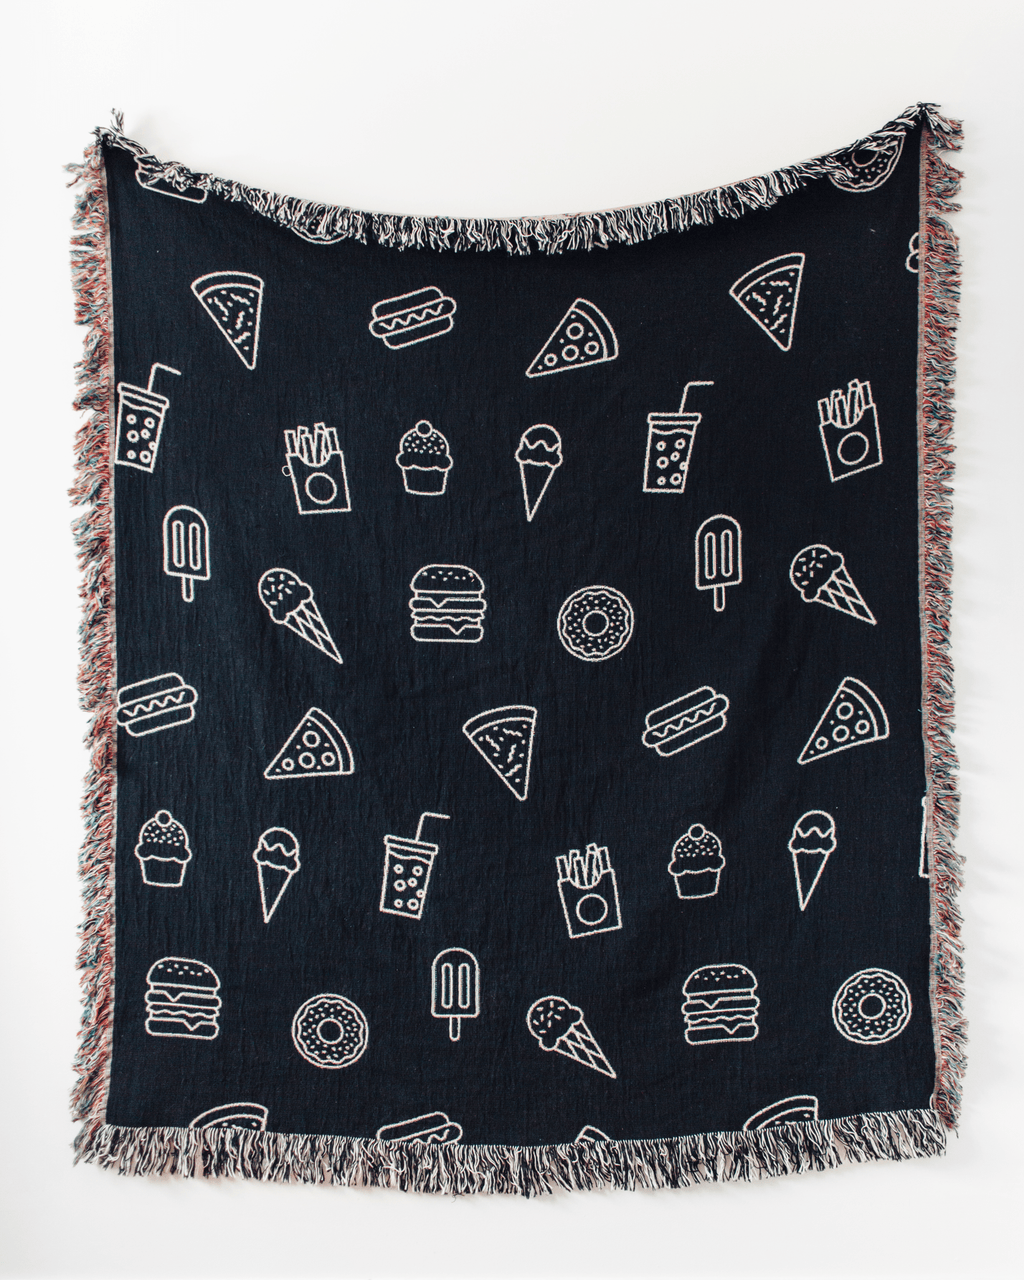 Junk Food Woven Throw Blanket